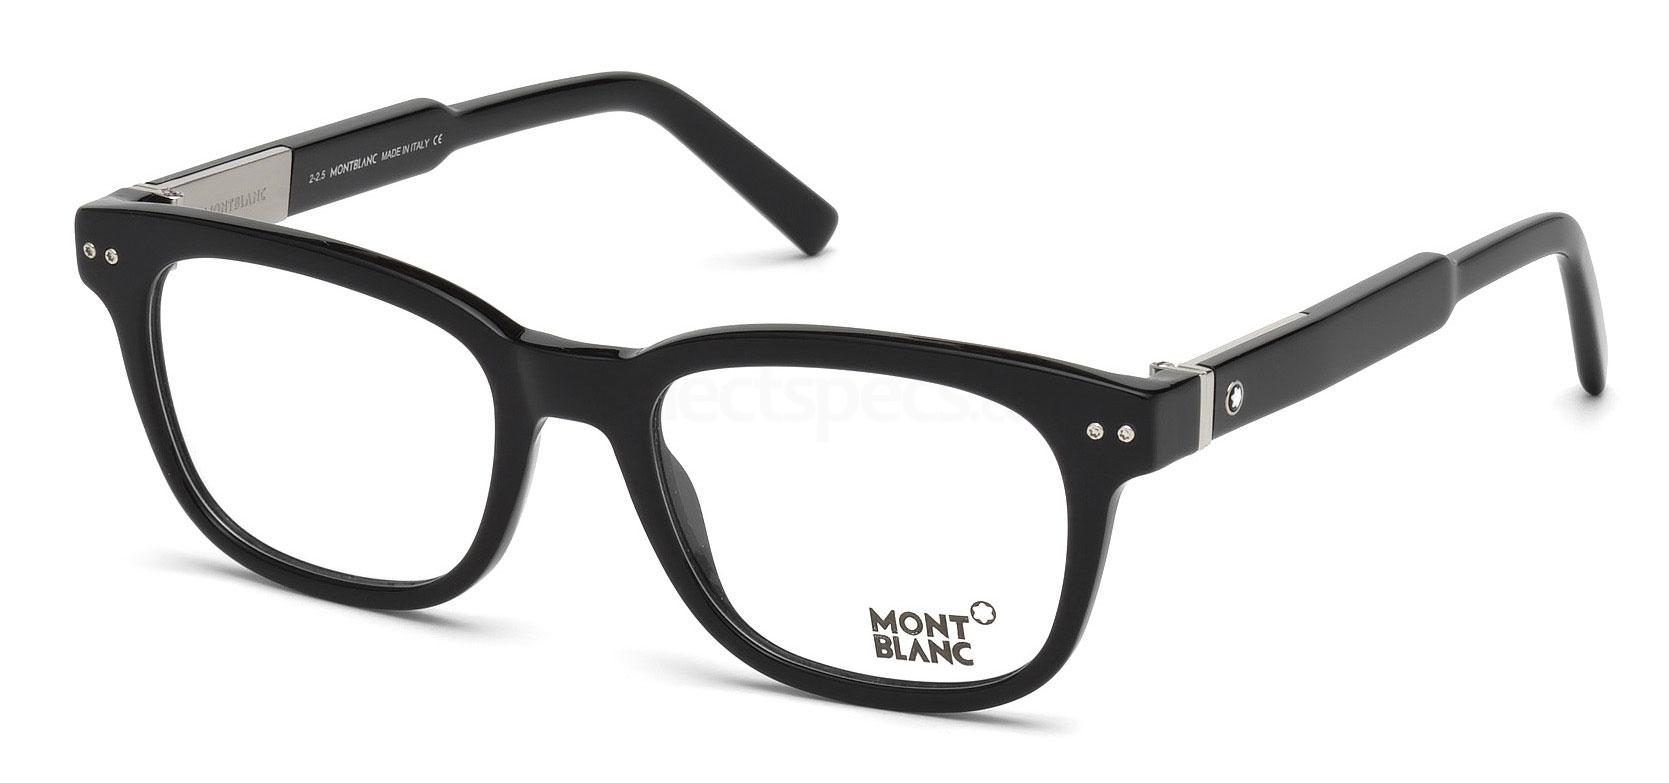 001 MB0628 Glasses, Mont Blanc